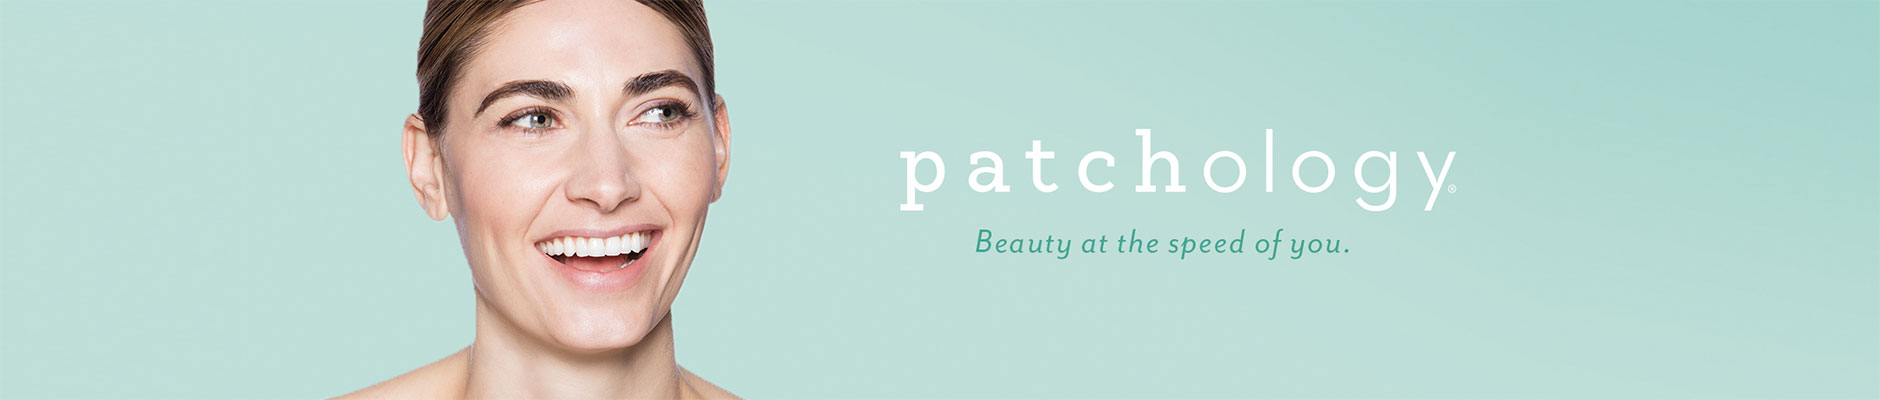 patchology - Beauty at the speed of you.